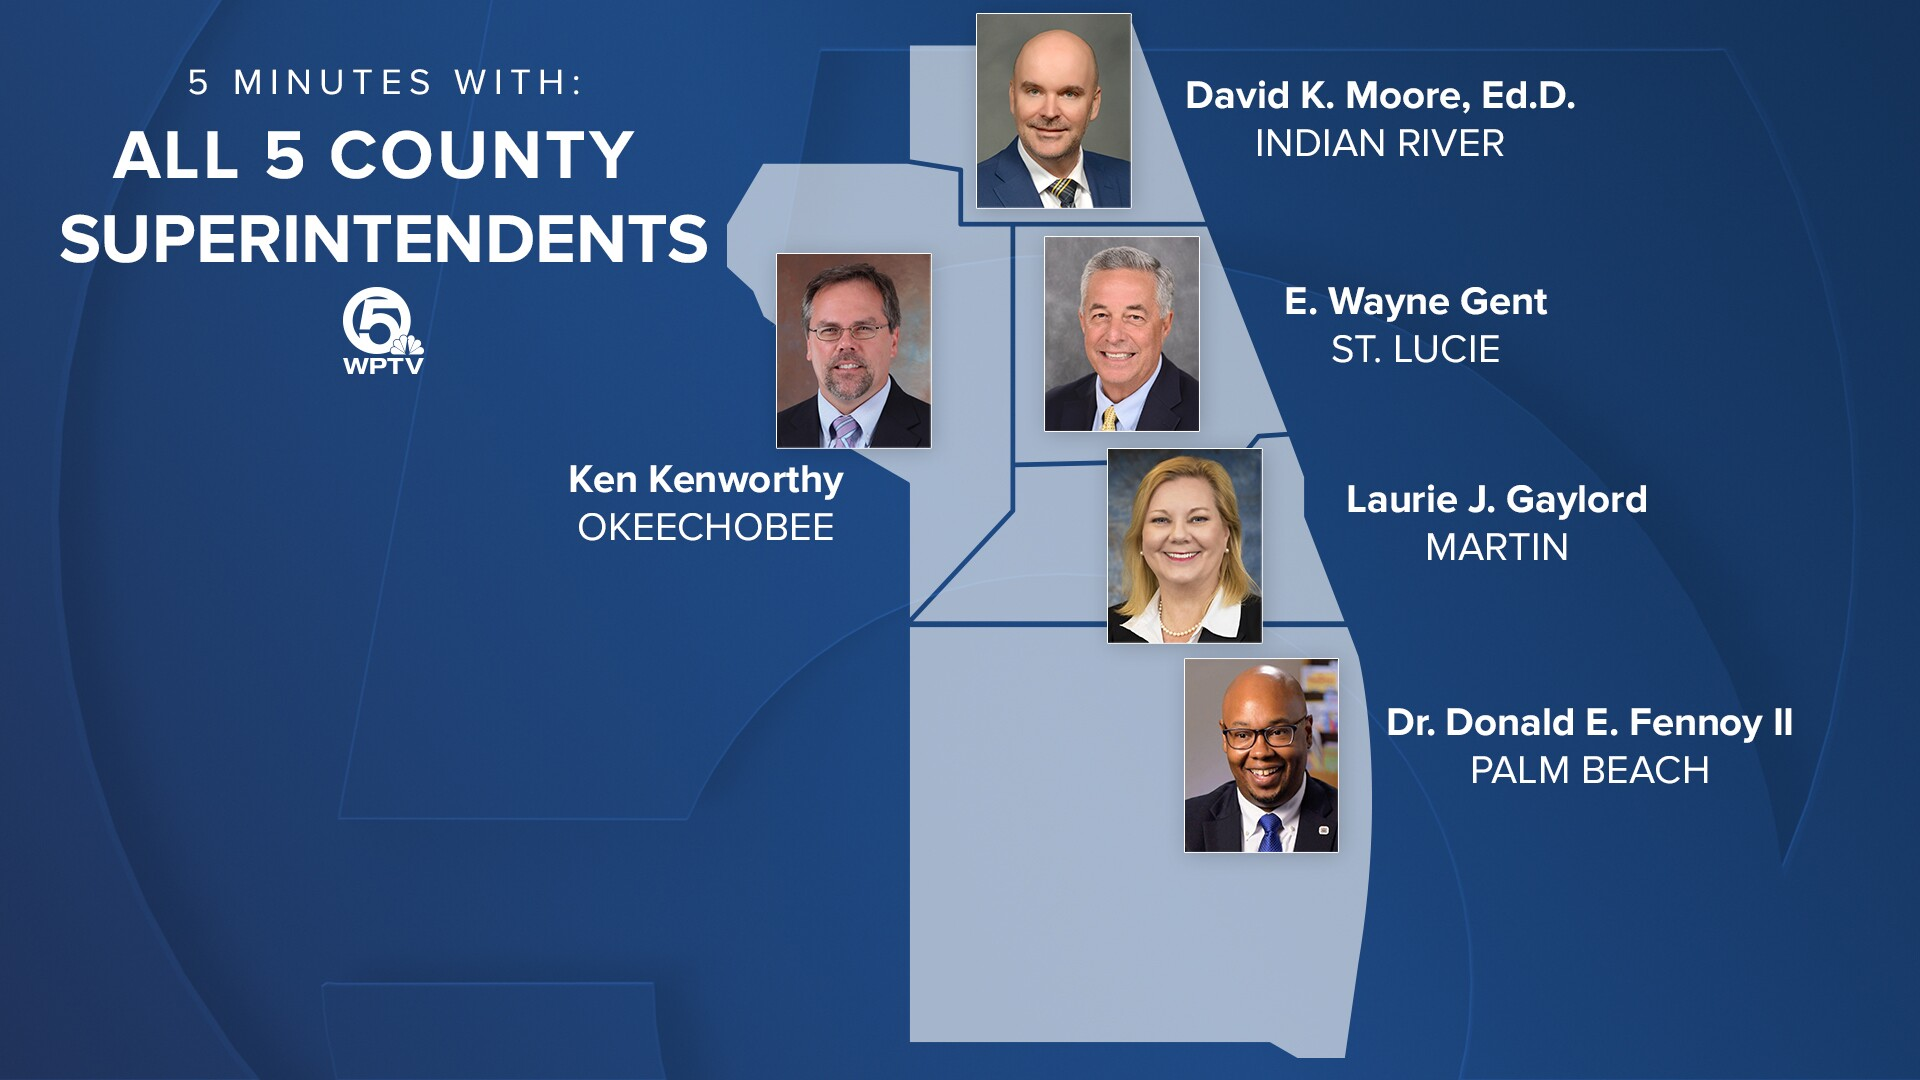 5 Minutes With: All 5 County Superintendents